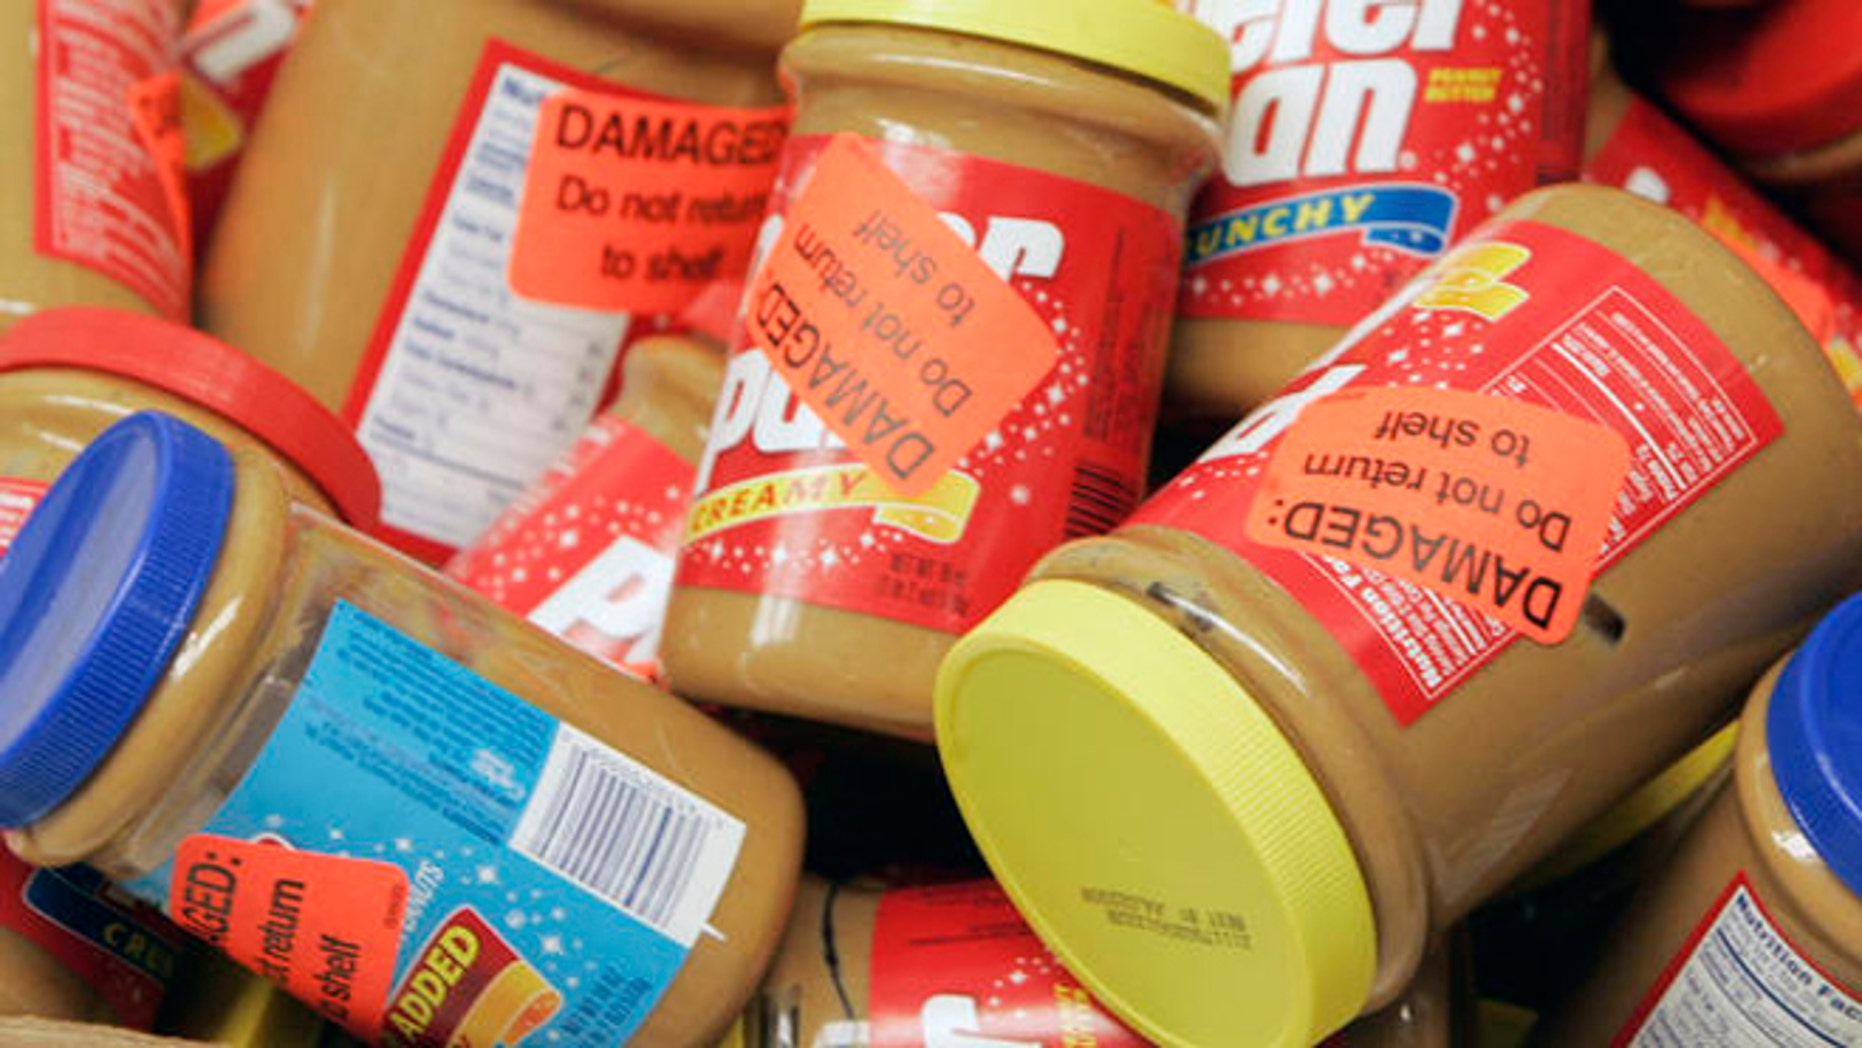 ** FILE **  Returned jars of Peter Pan Peanut Butter are shown at a super market, in this Feb. 16, 2007, file photo in Atlanta. ConAgra Foods Inc. has extended its recall of all peanut butter produced at a plant in Georgia by more than a year, back to October 2004, the Food and Drug Administration said Friday, March 9, 2007.  (AP Photo/John Bazemore, file)